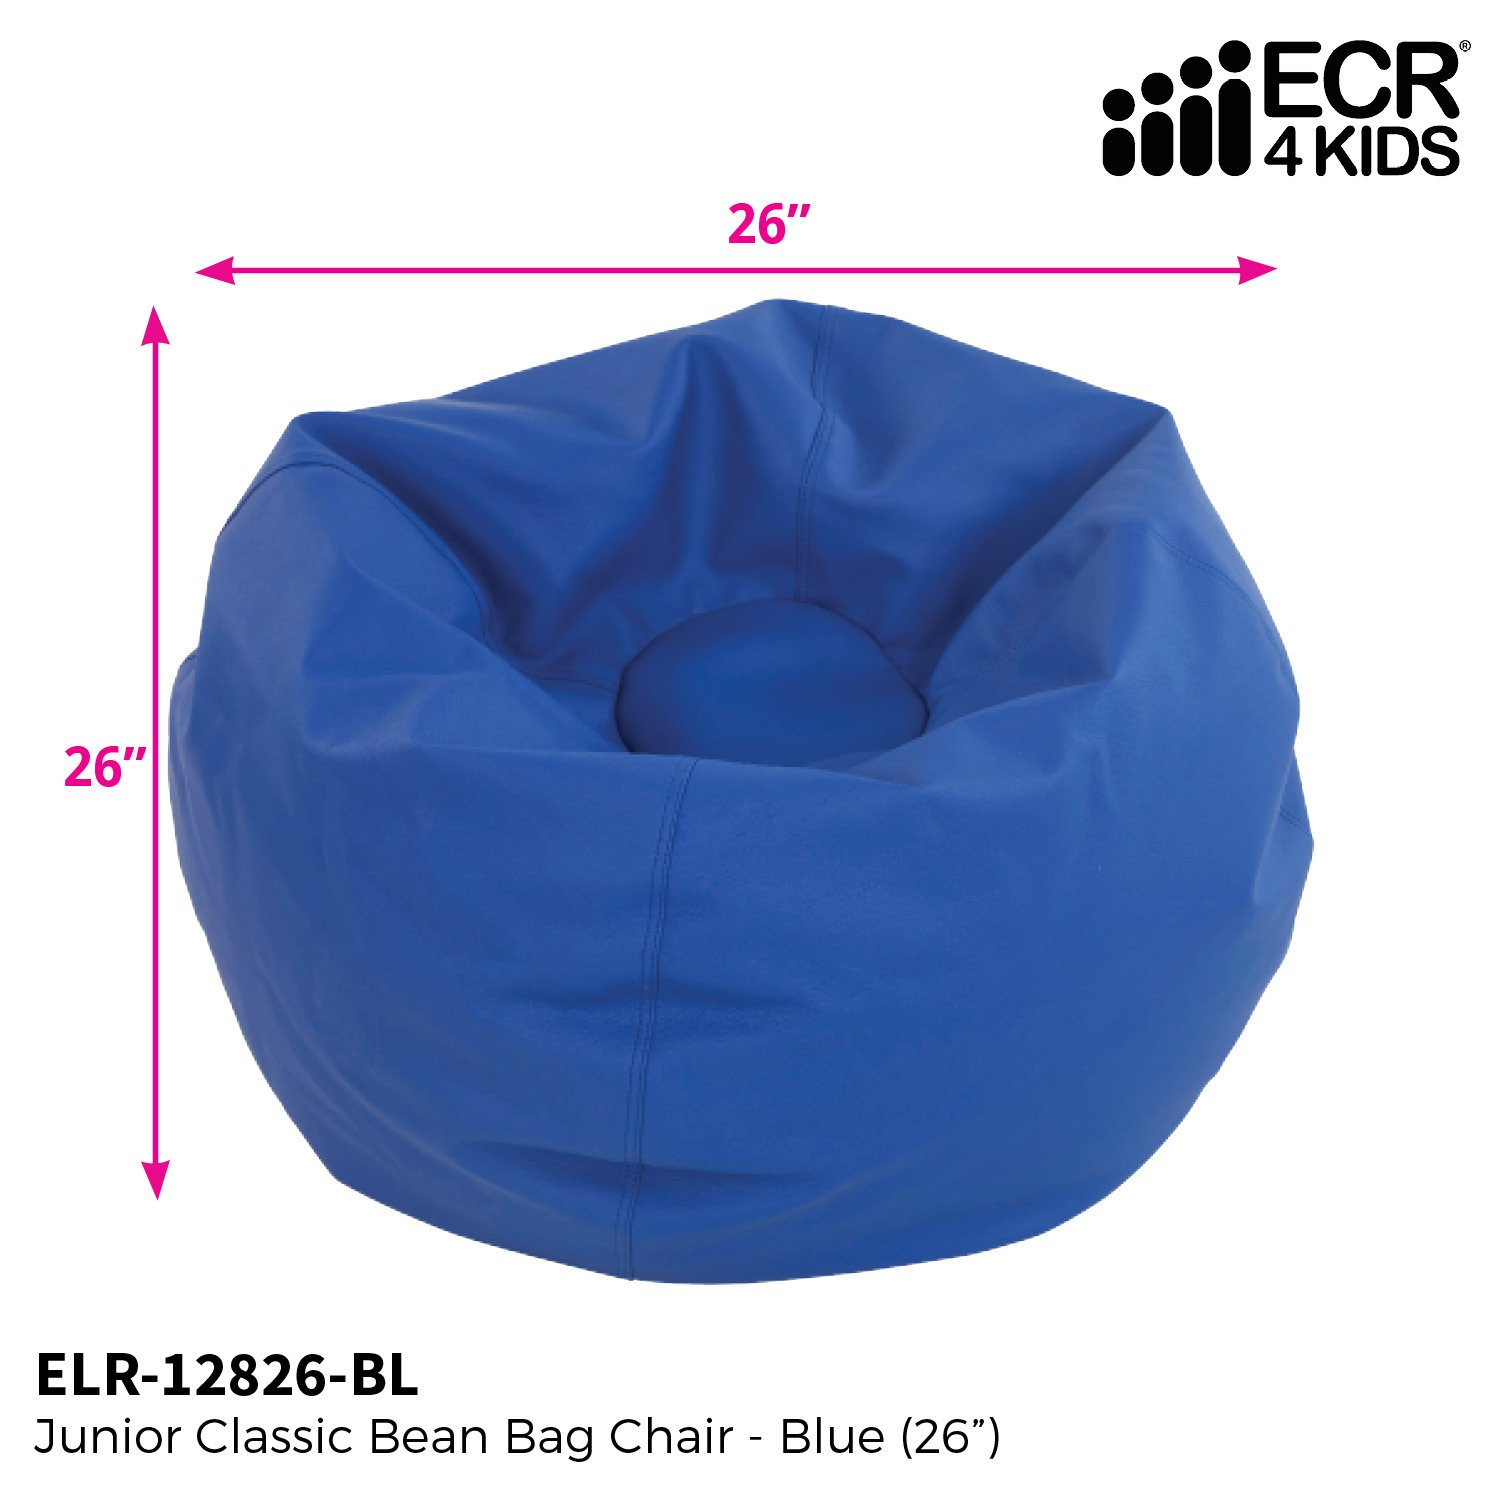 Strange Ecr4Kids Junior Classic Bean Bag Chair Blue 26 Andrewgaddart Wooden Chair Designs For Living Room Andrewgaddartcom